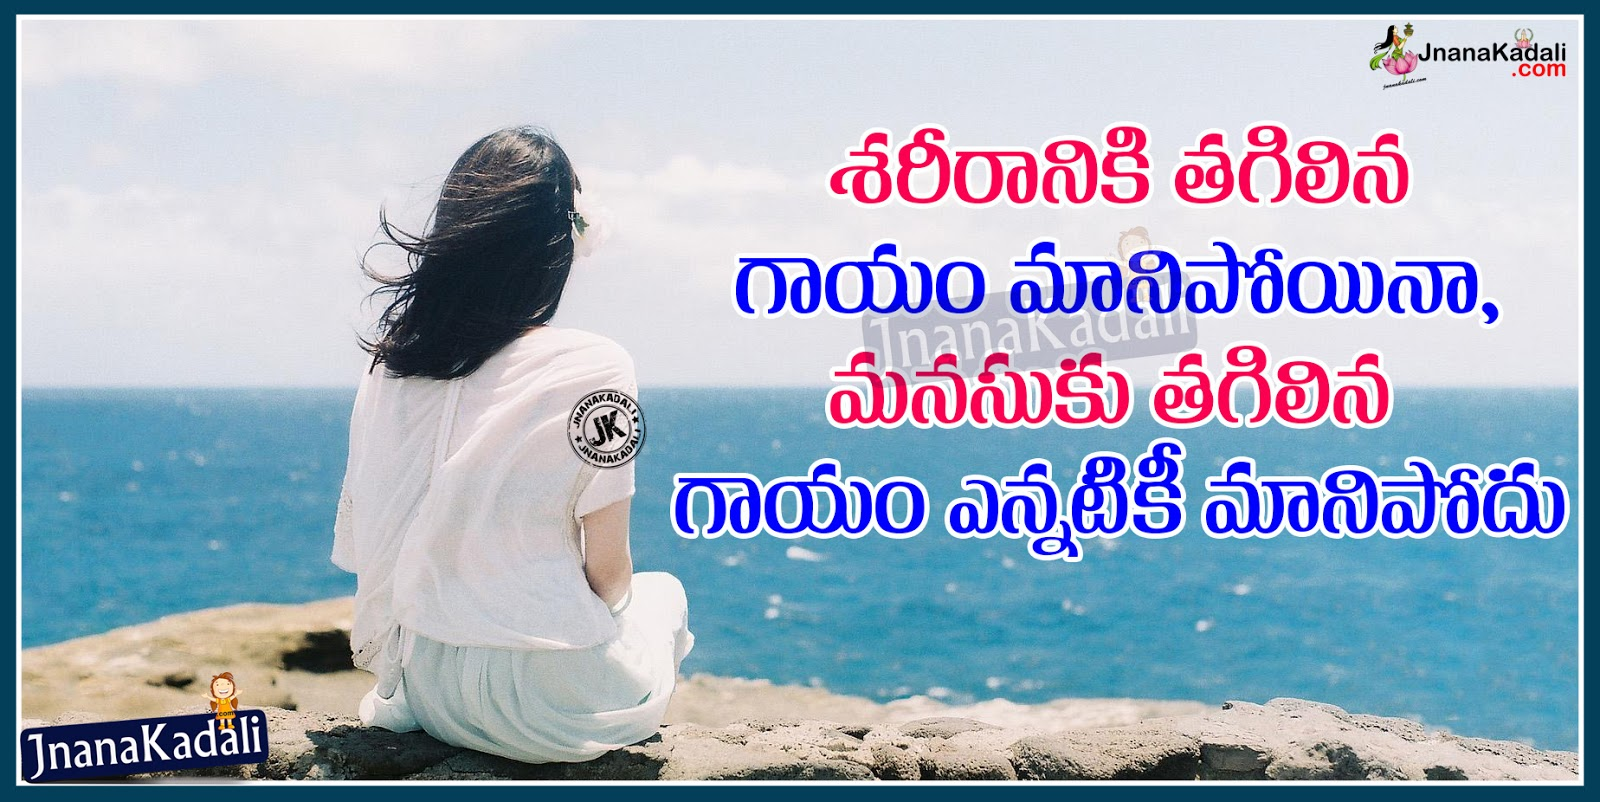 Sad Quotes About Love In Telugu : ... Telugu QuotesEnglish quotesHindi quotesTamil quotesDharmasandehalu